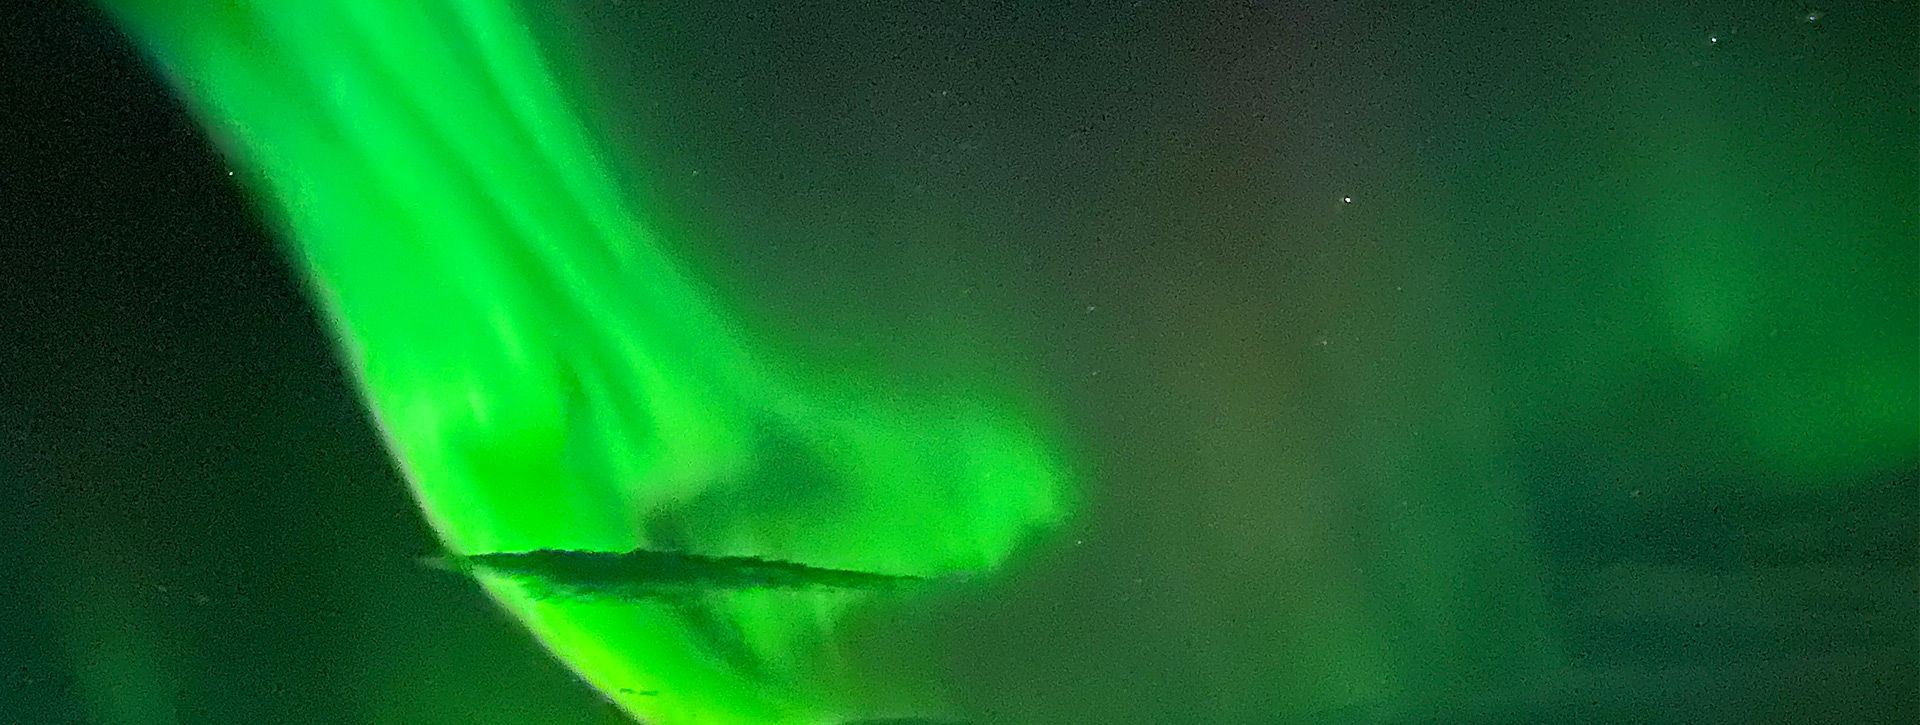 4 Tips to Spot the Northern Lights